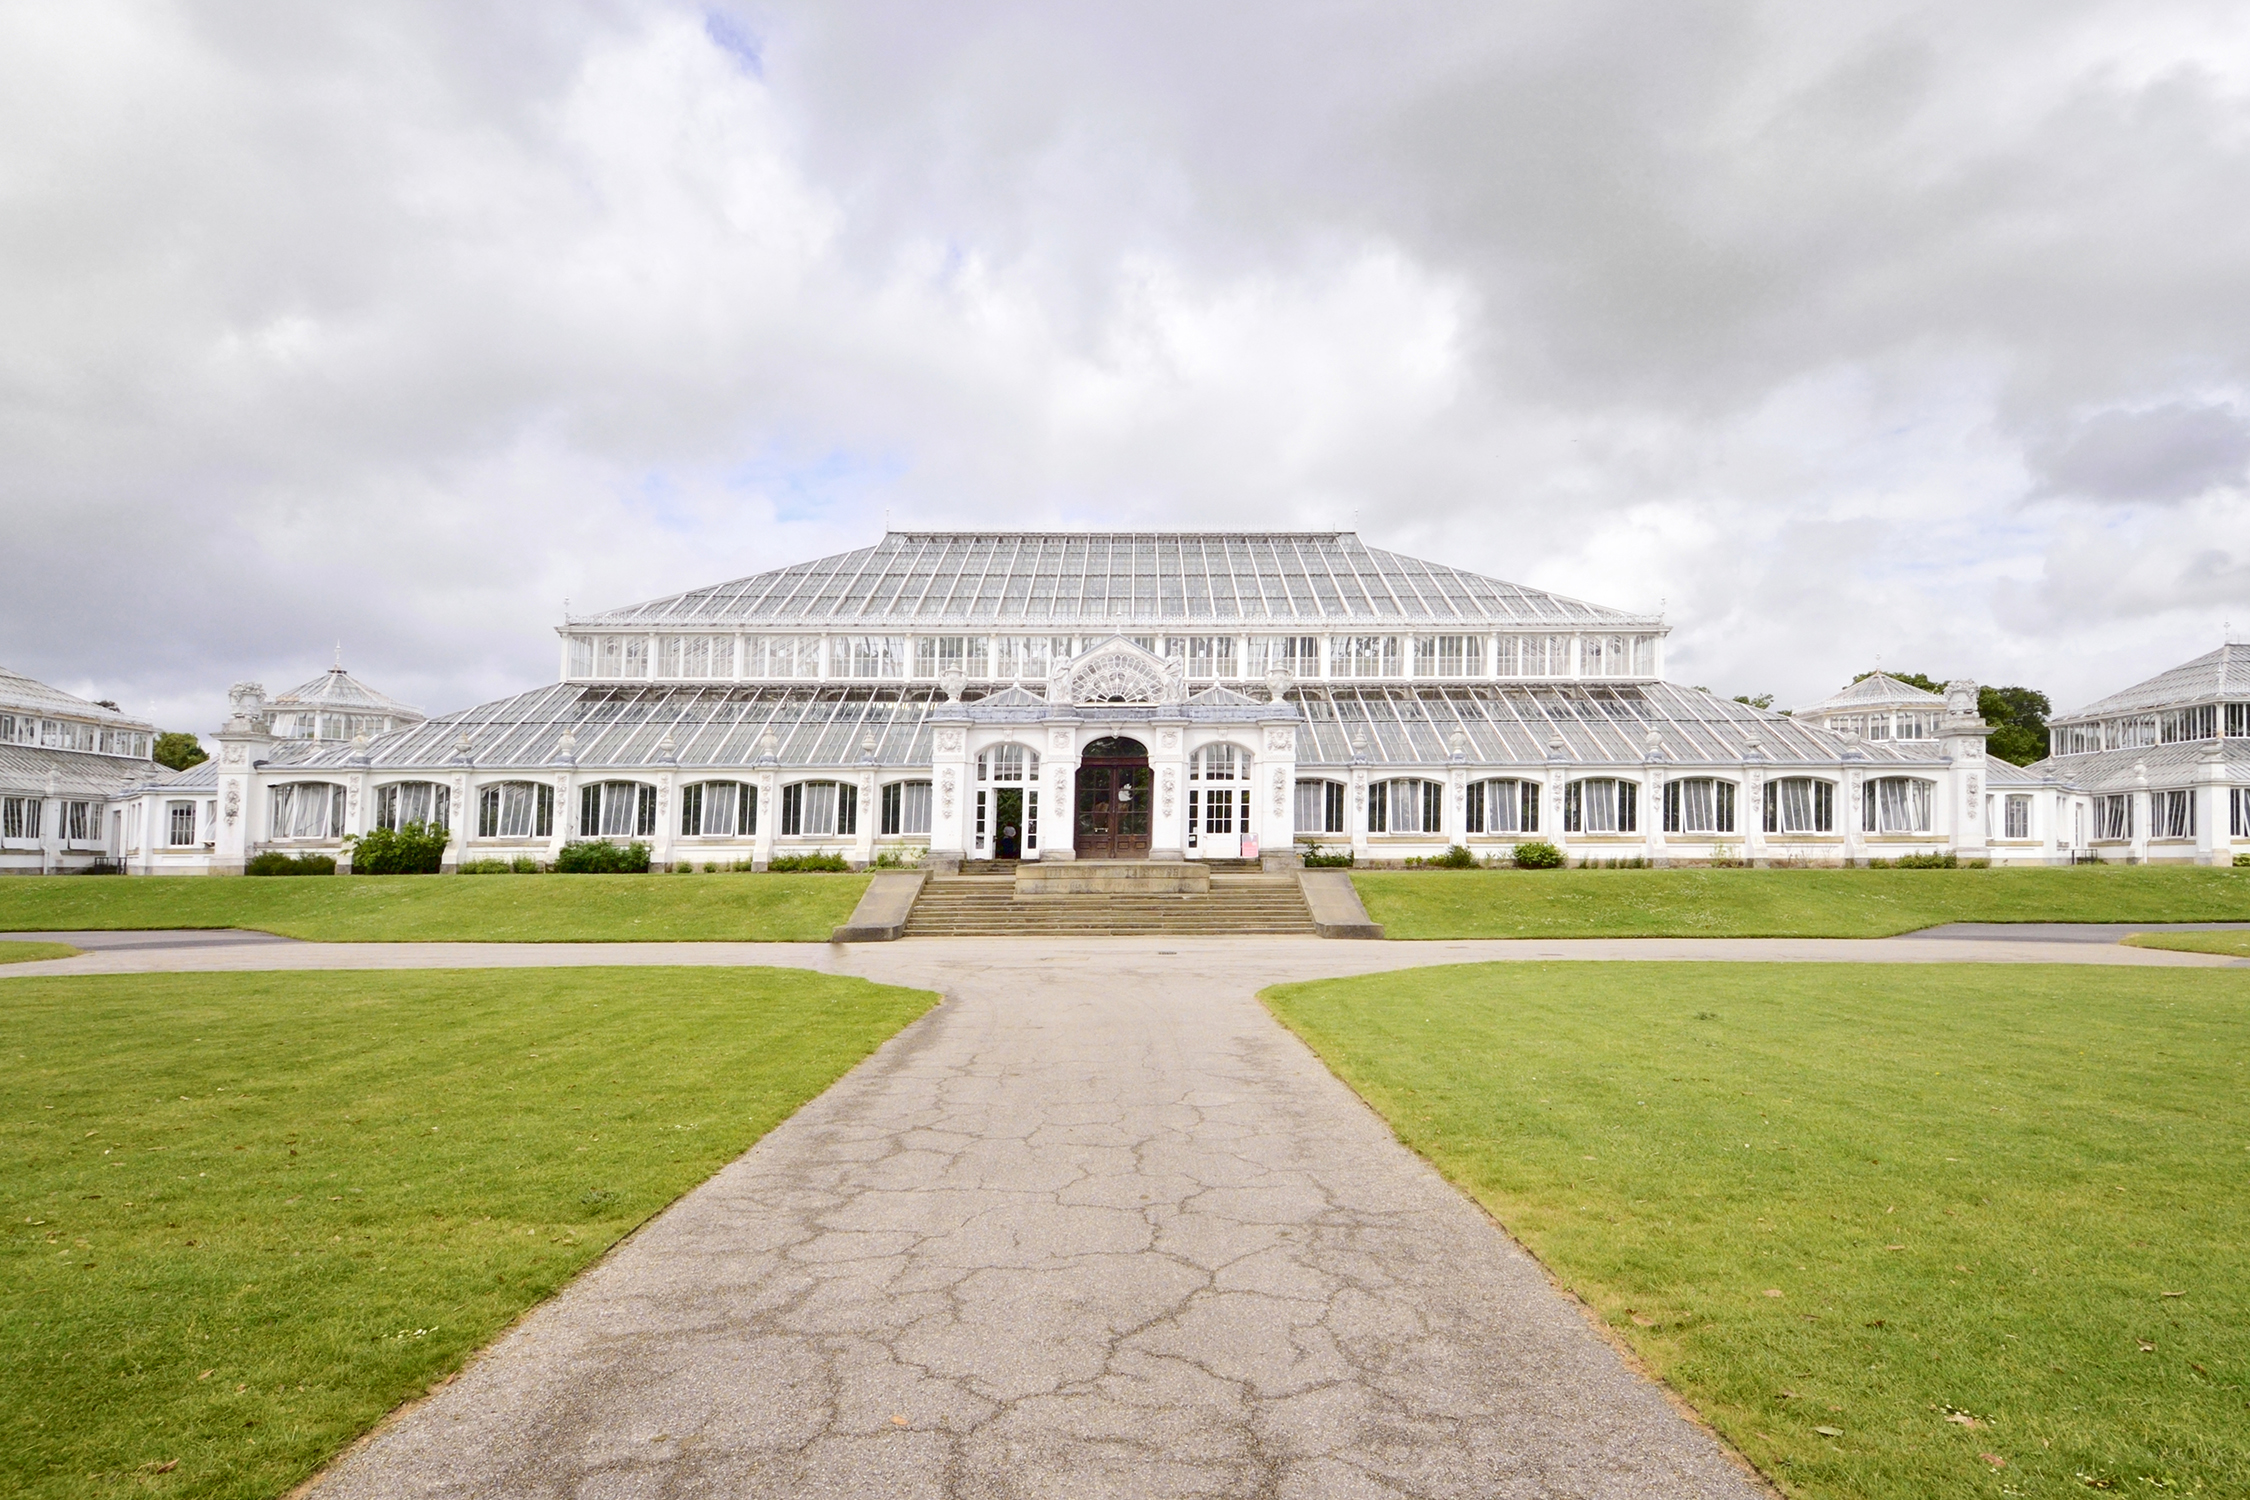 Kew Gardens reopening spurs memories of Barnshaws' Palm House renovation